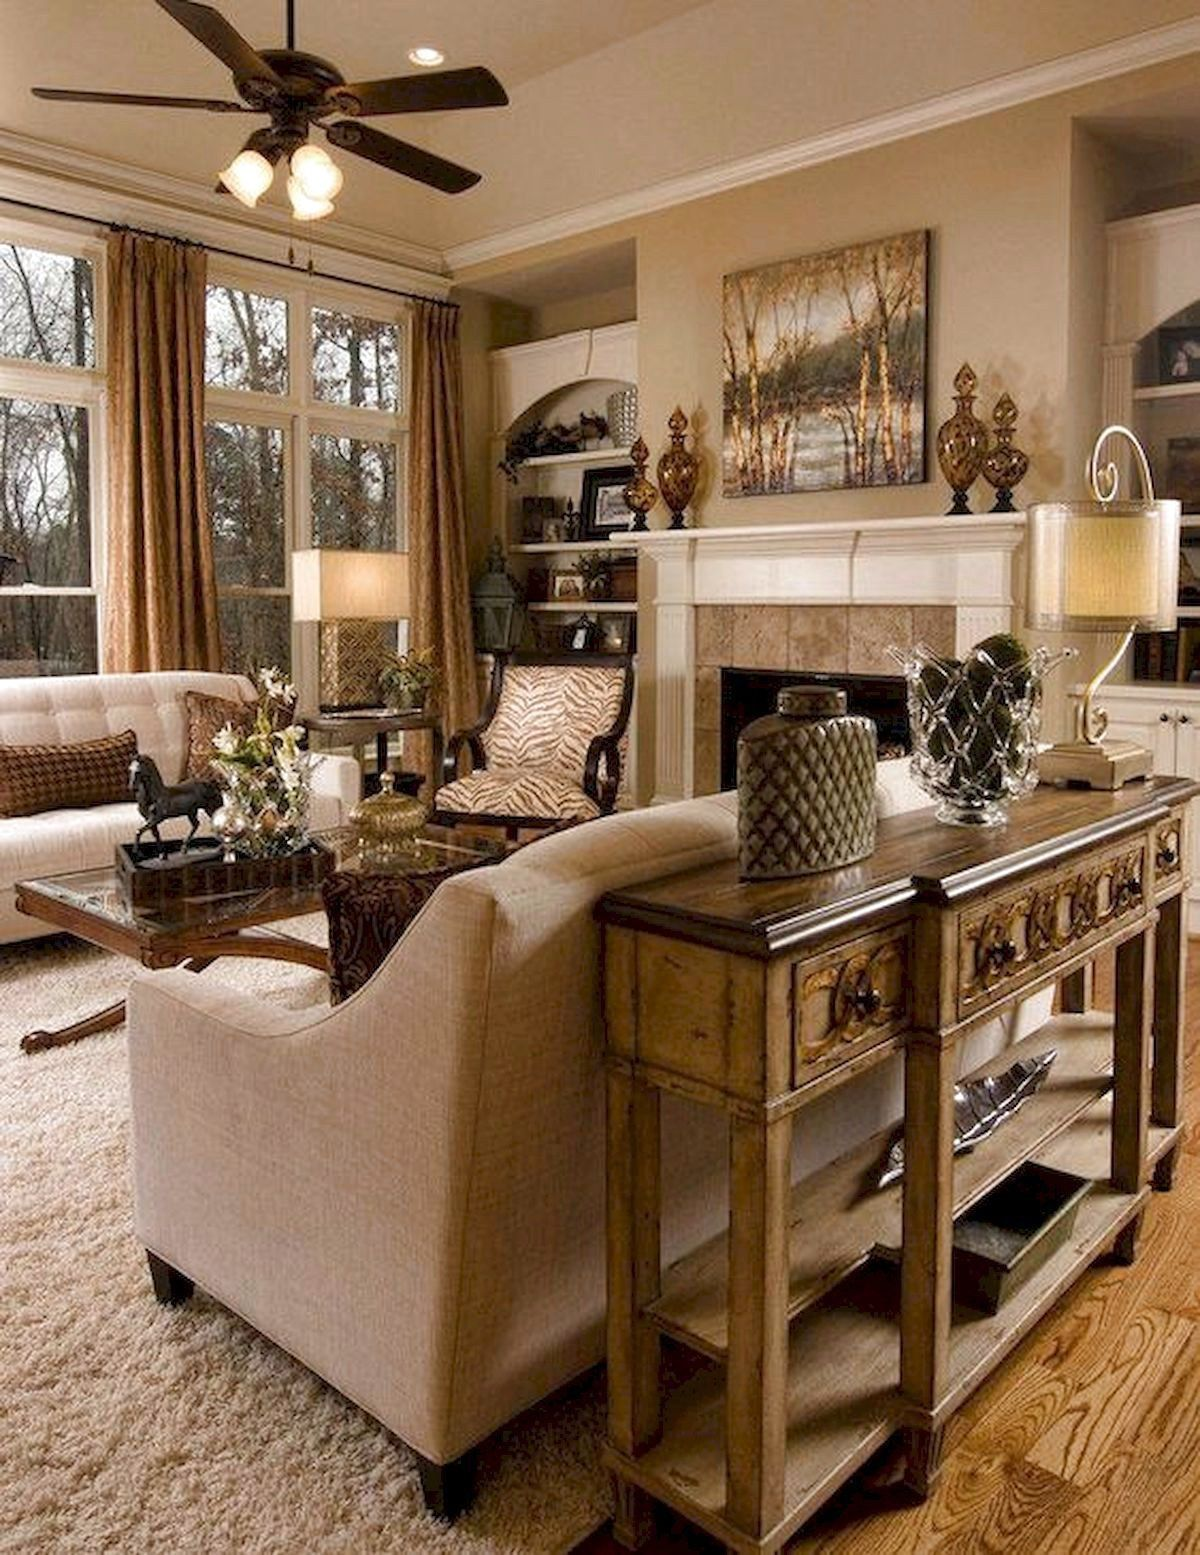 Living Room Designs Traditional: 70 Favourite Farmhouse Living Room Decor Ideas